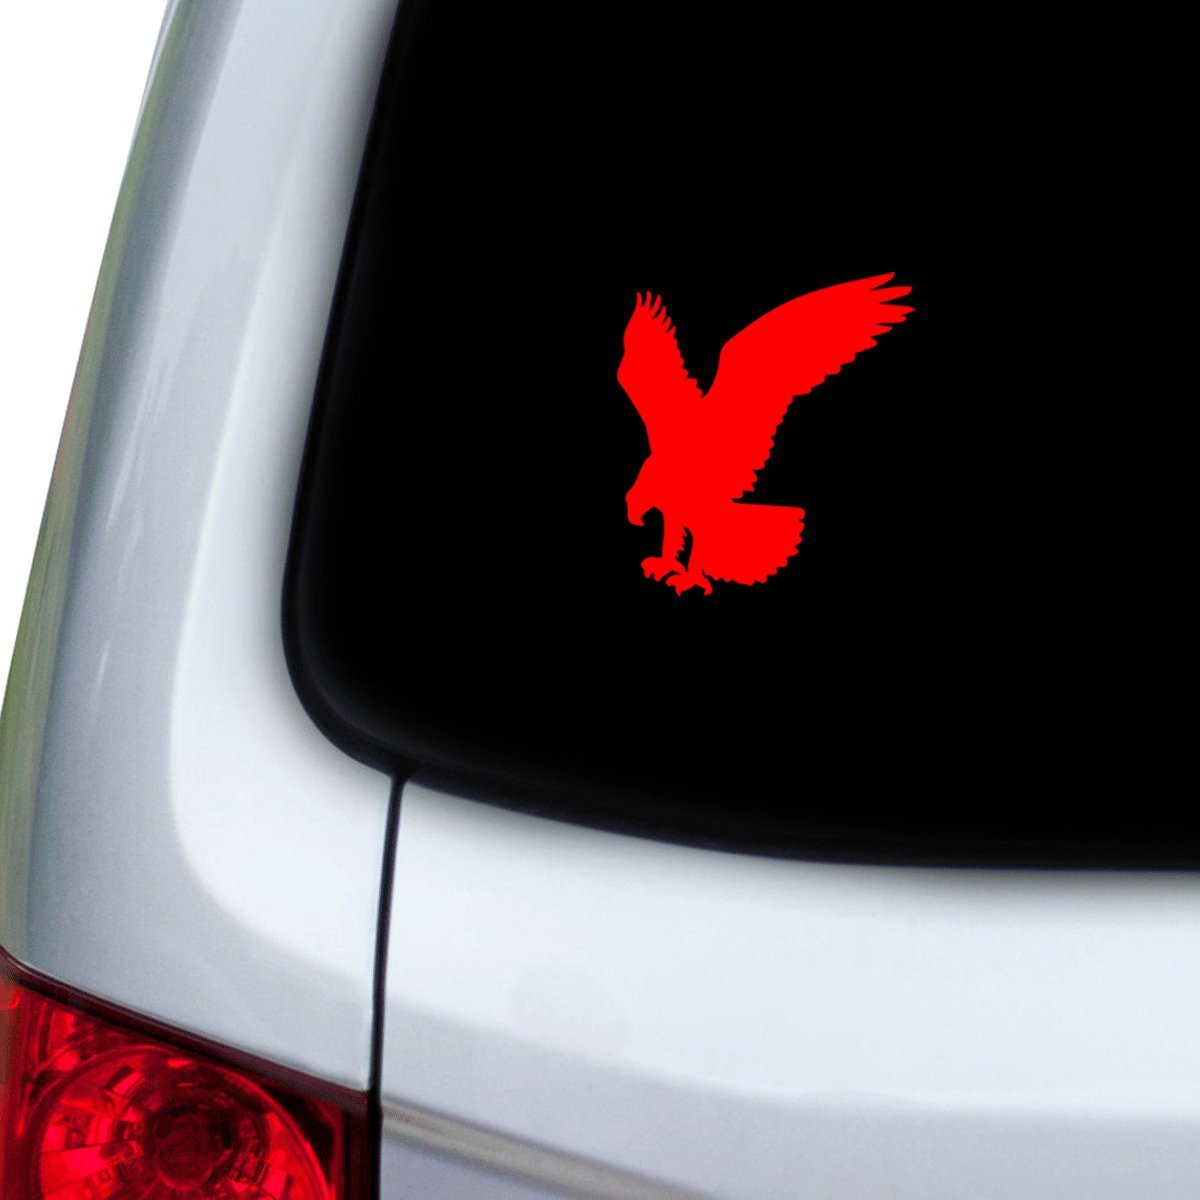 Doors Hoods Red StickAny Car and Auto Decal Series Eagle Grabbing Sticker for Windows